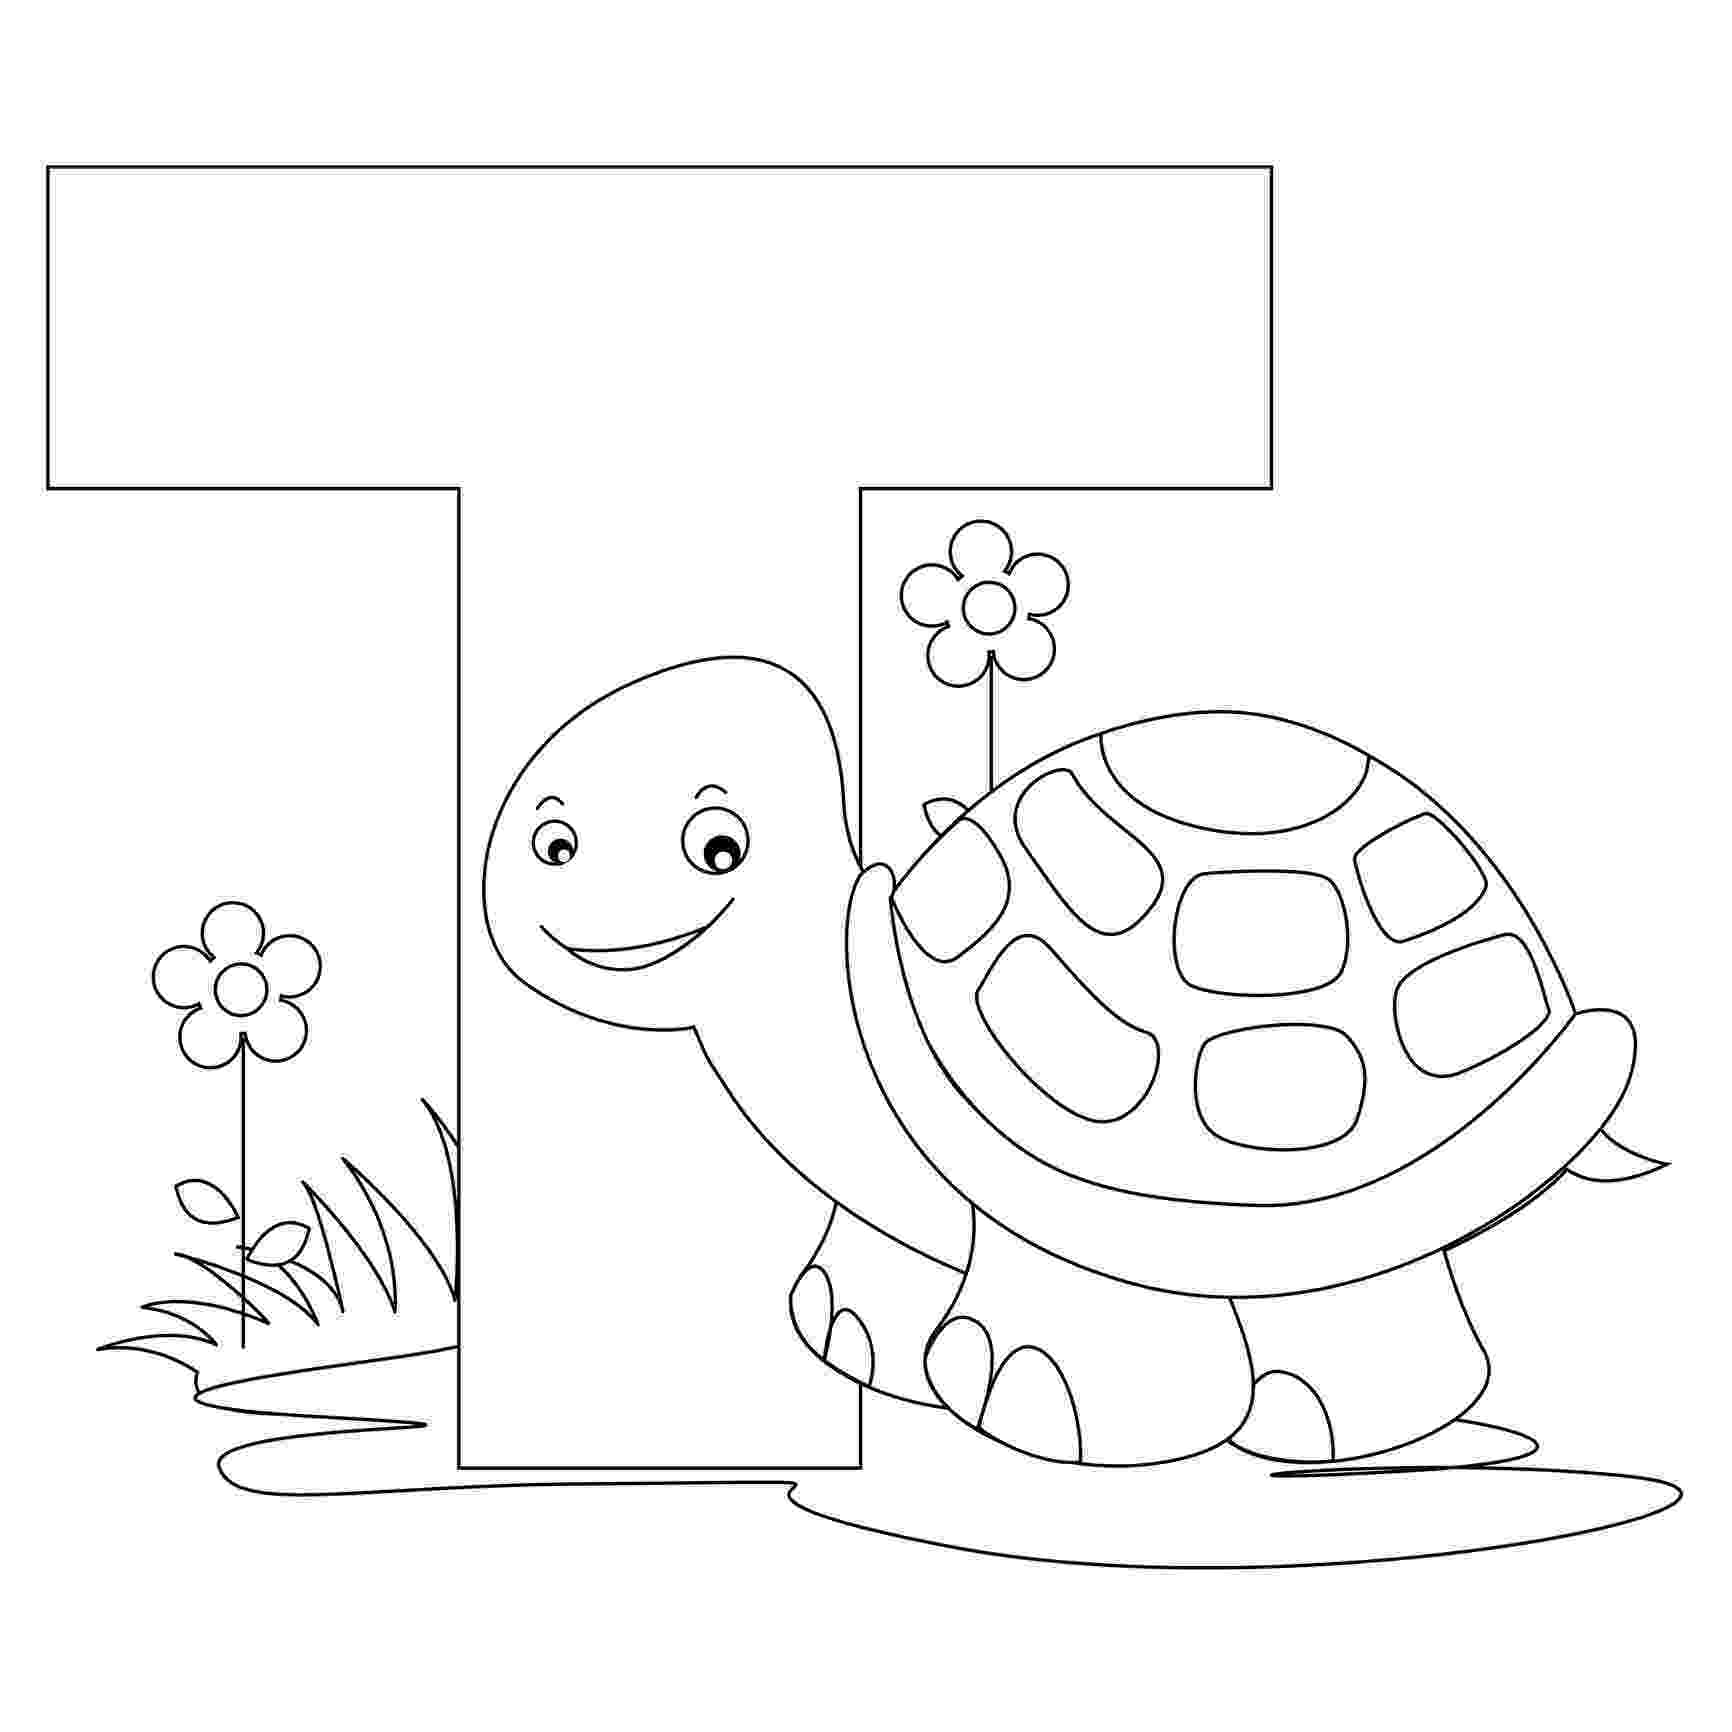 free printable letter q coloring pages printable letter q coloring page sunday school free letter q printable pages coloring